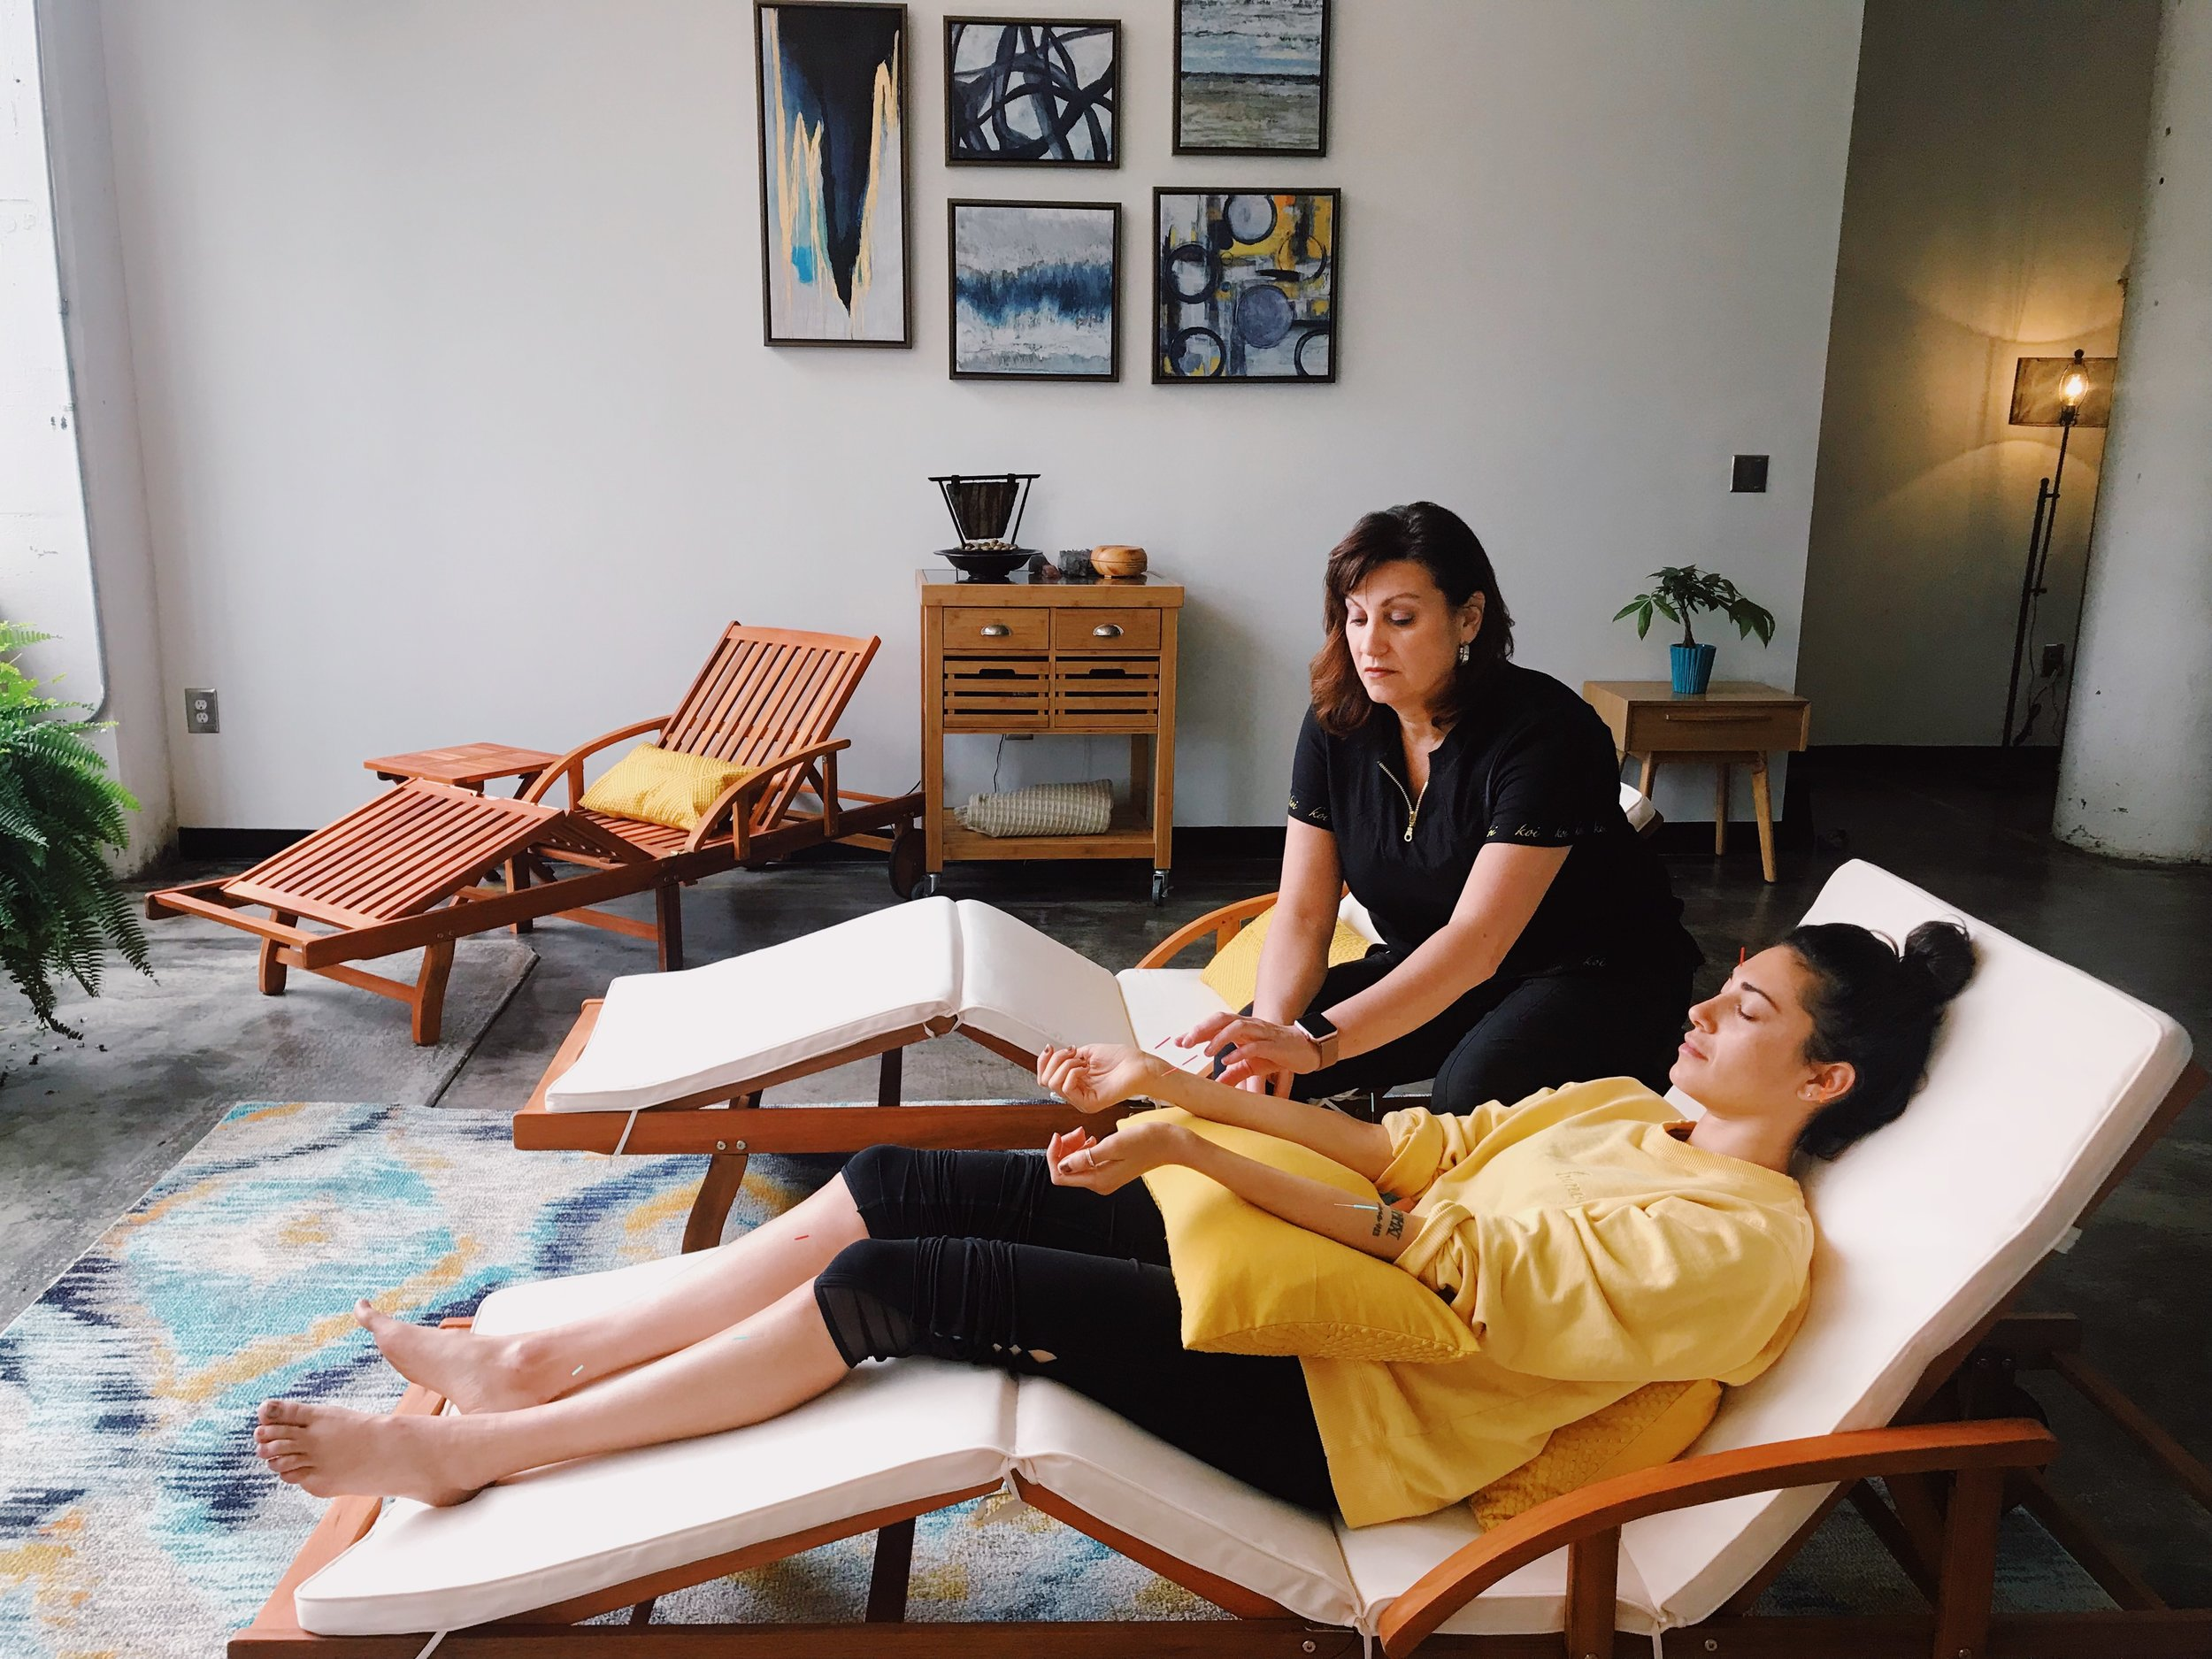 Attentive Staff, Privacy - With National and State of Georgia licensed Acupuncturists, you will experience the best of Traditional Chinese Medicine. We provide confidential electronic intake forms to complete on your phone or our ipads, prior to every session, allowing for a customized treatment for you.